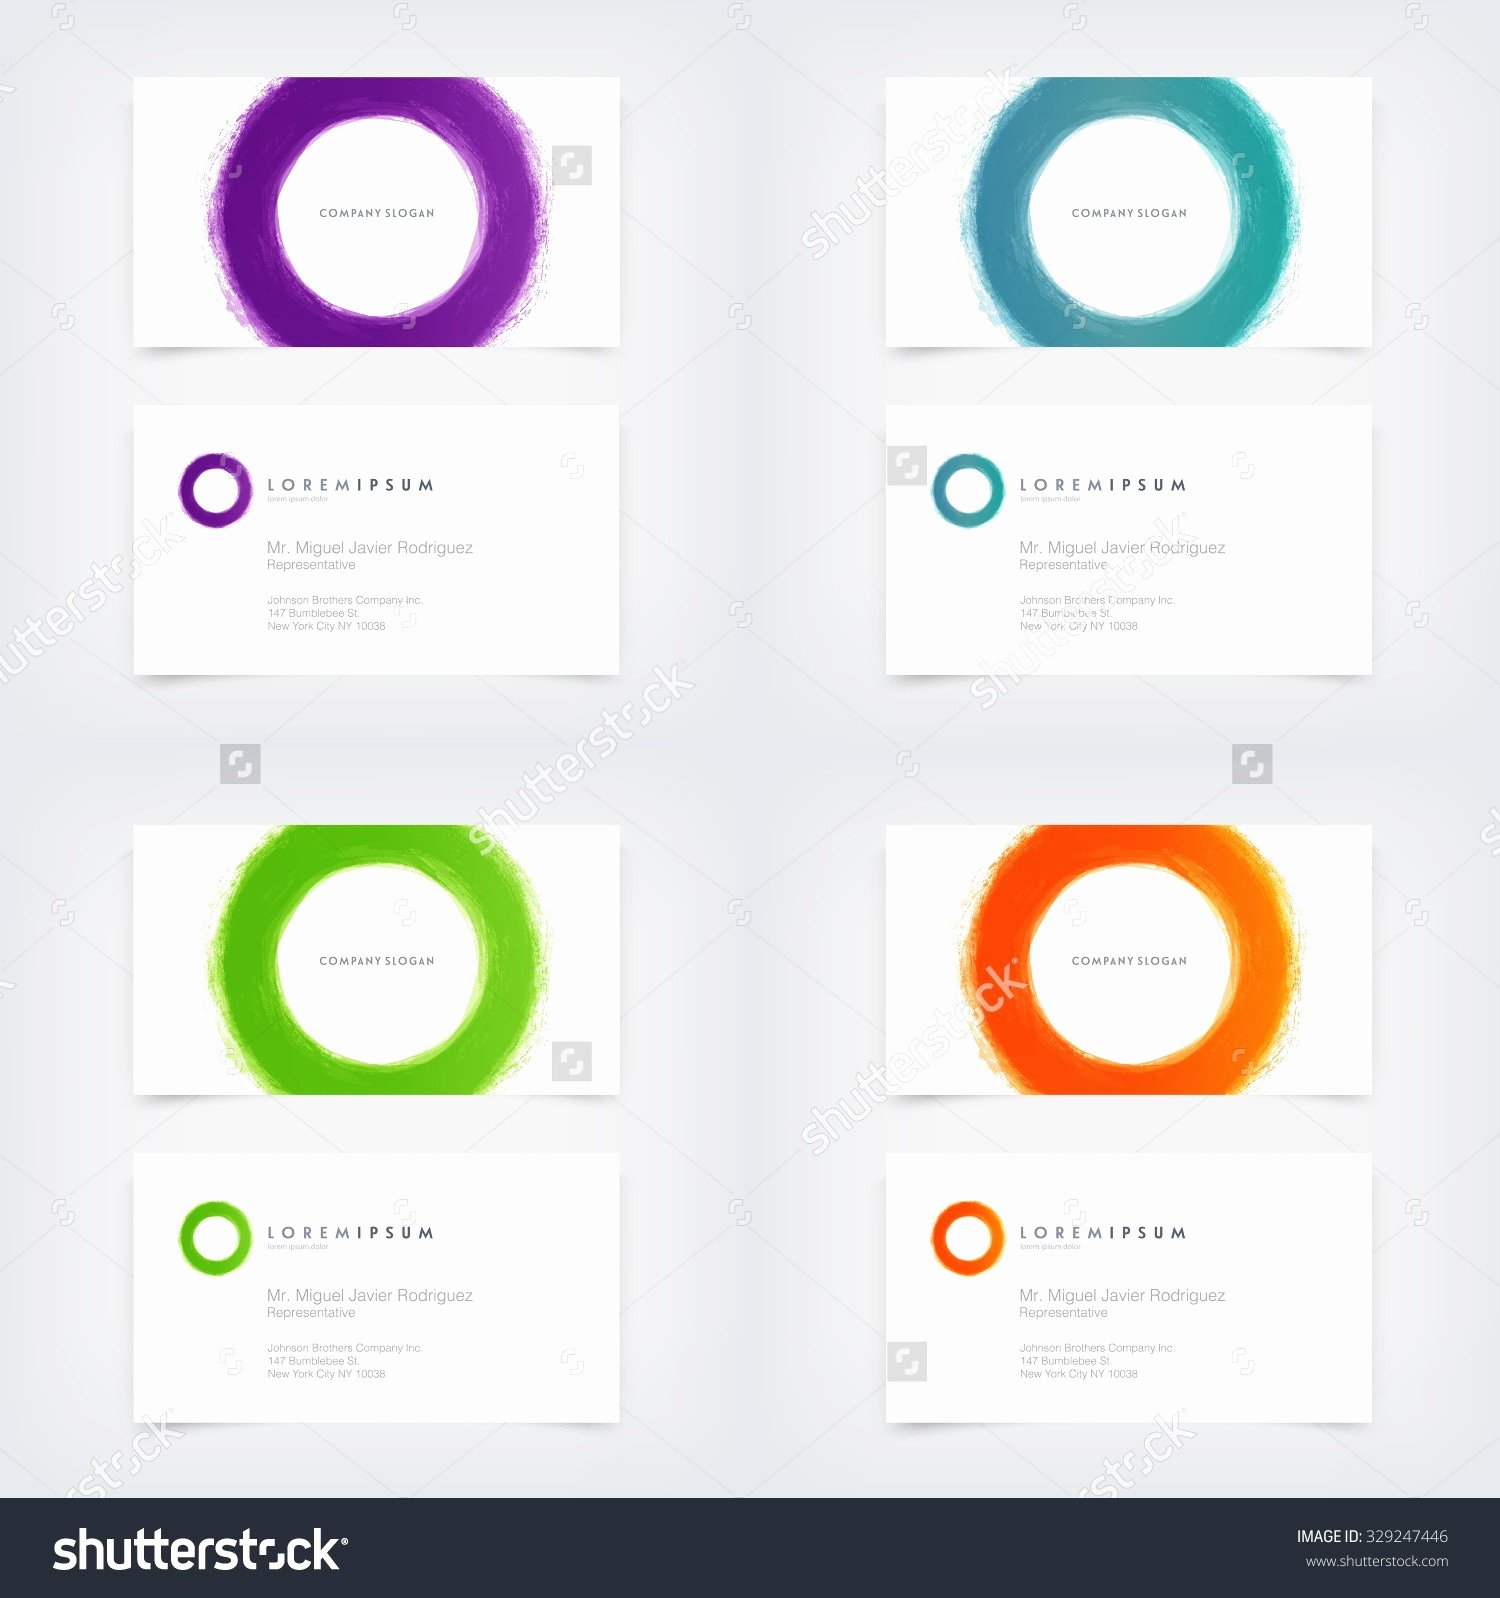 Circle Business Card Template Awesome Brother Business Card Template Luxury Design Professional